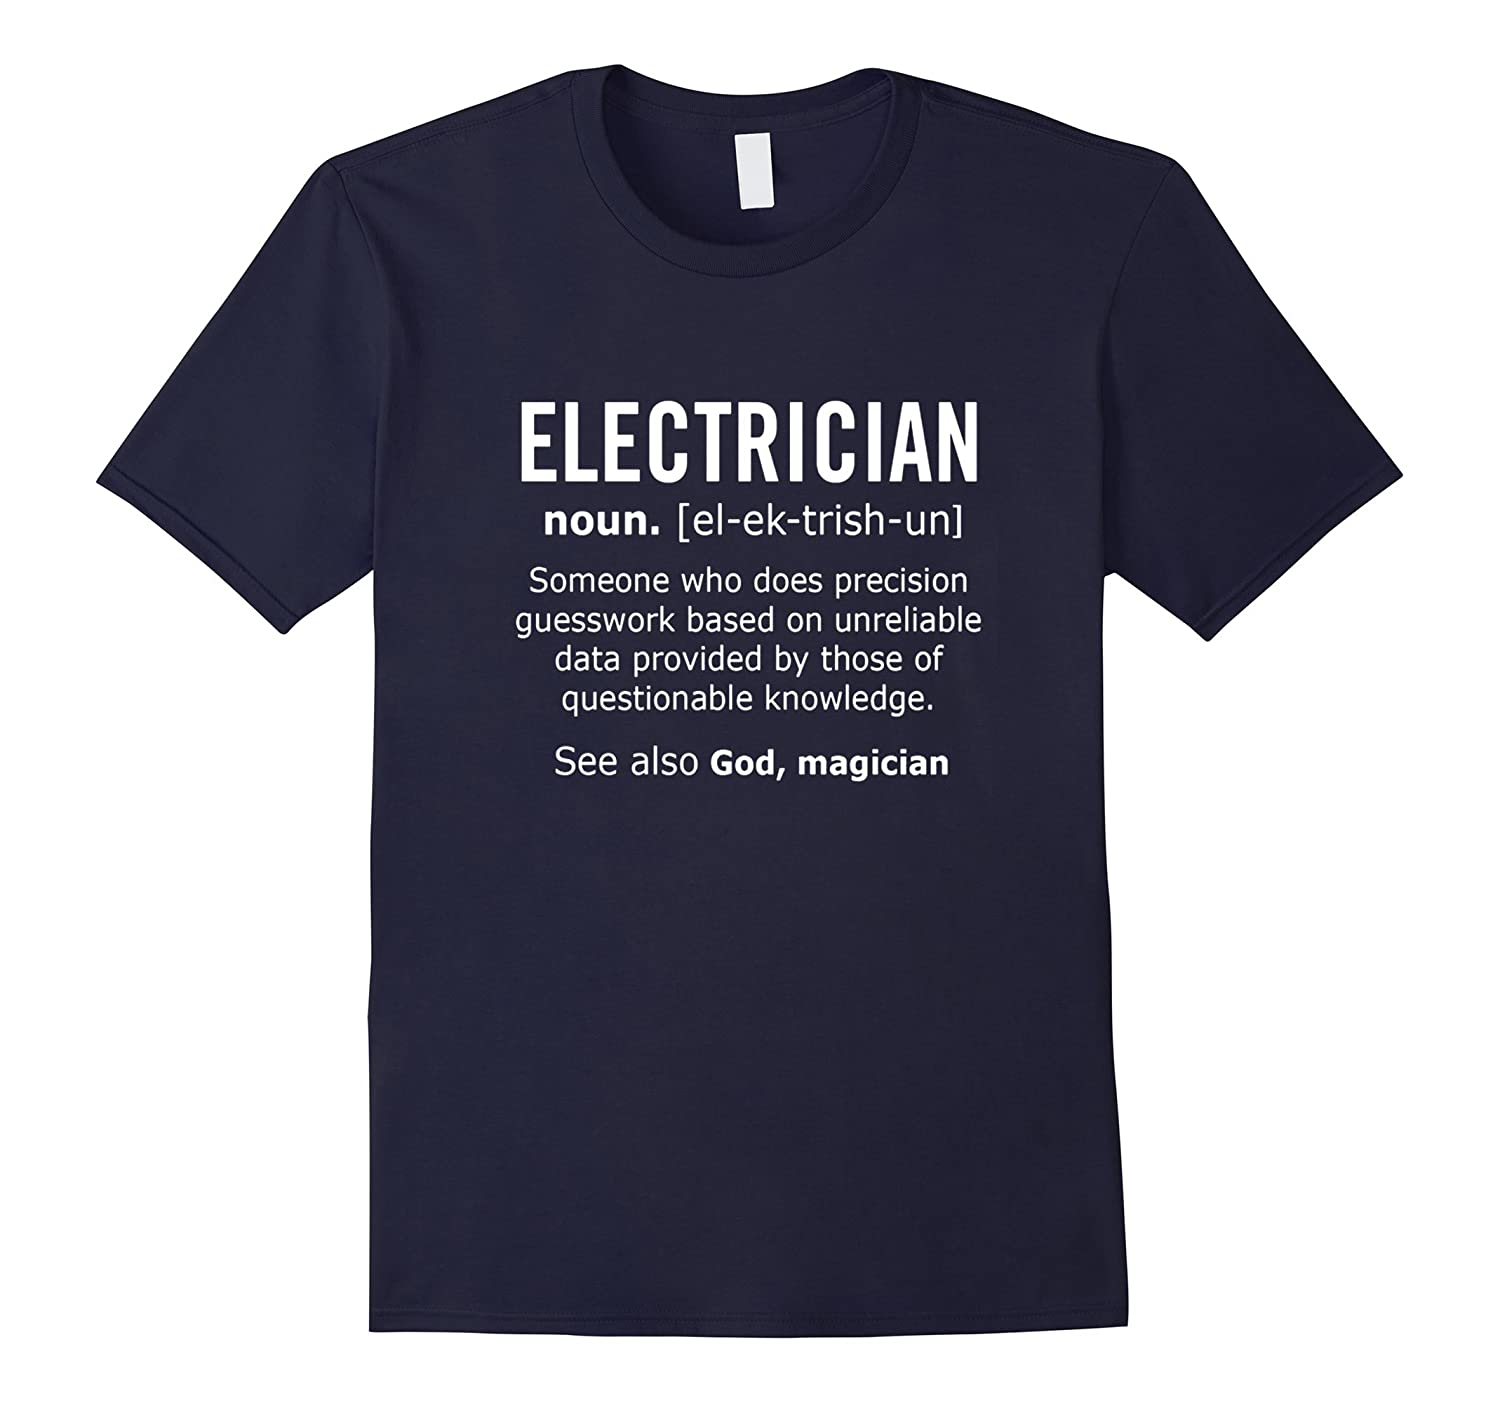 Electrician Noun Job Mens Funny Shirt Christmas Gift-TJ